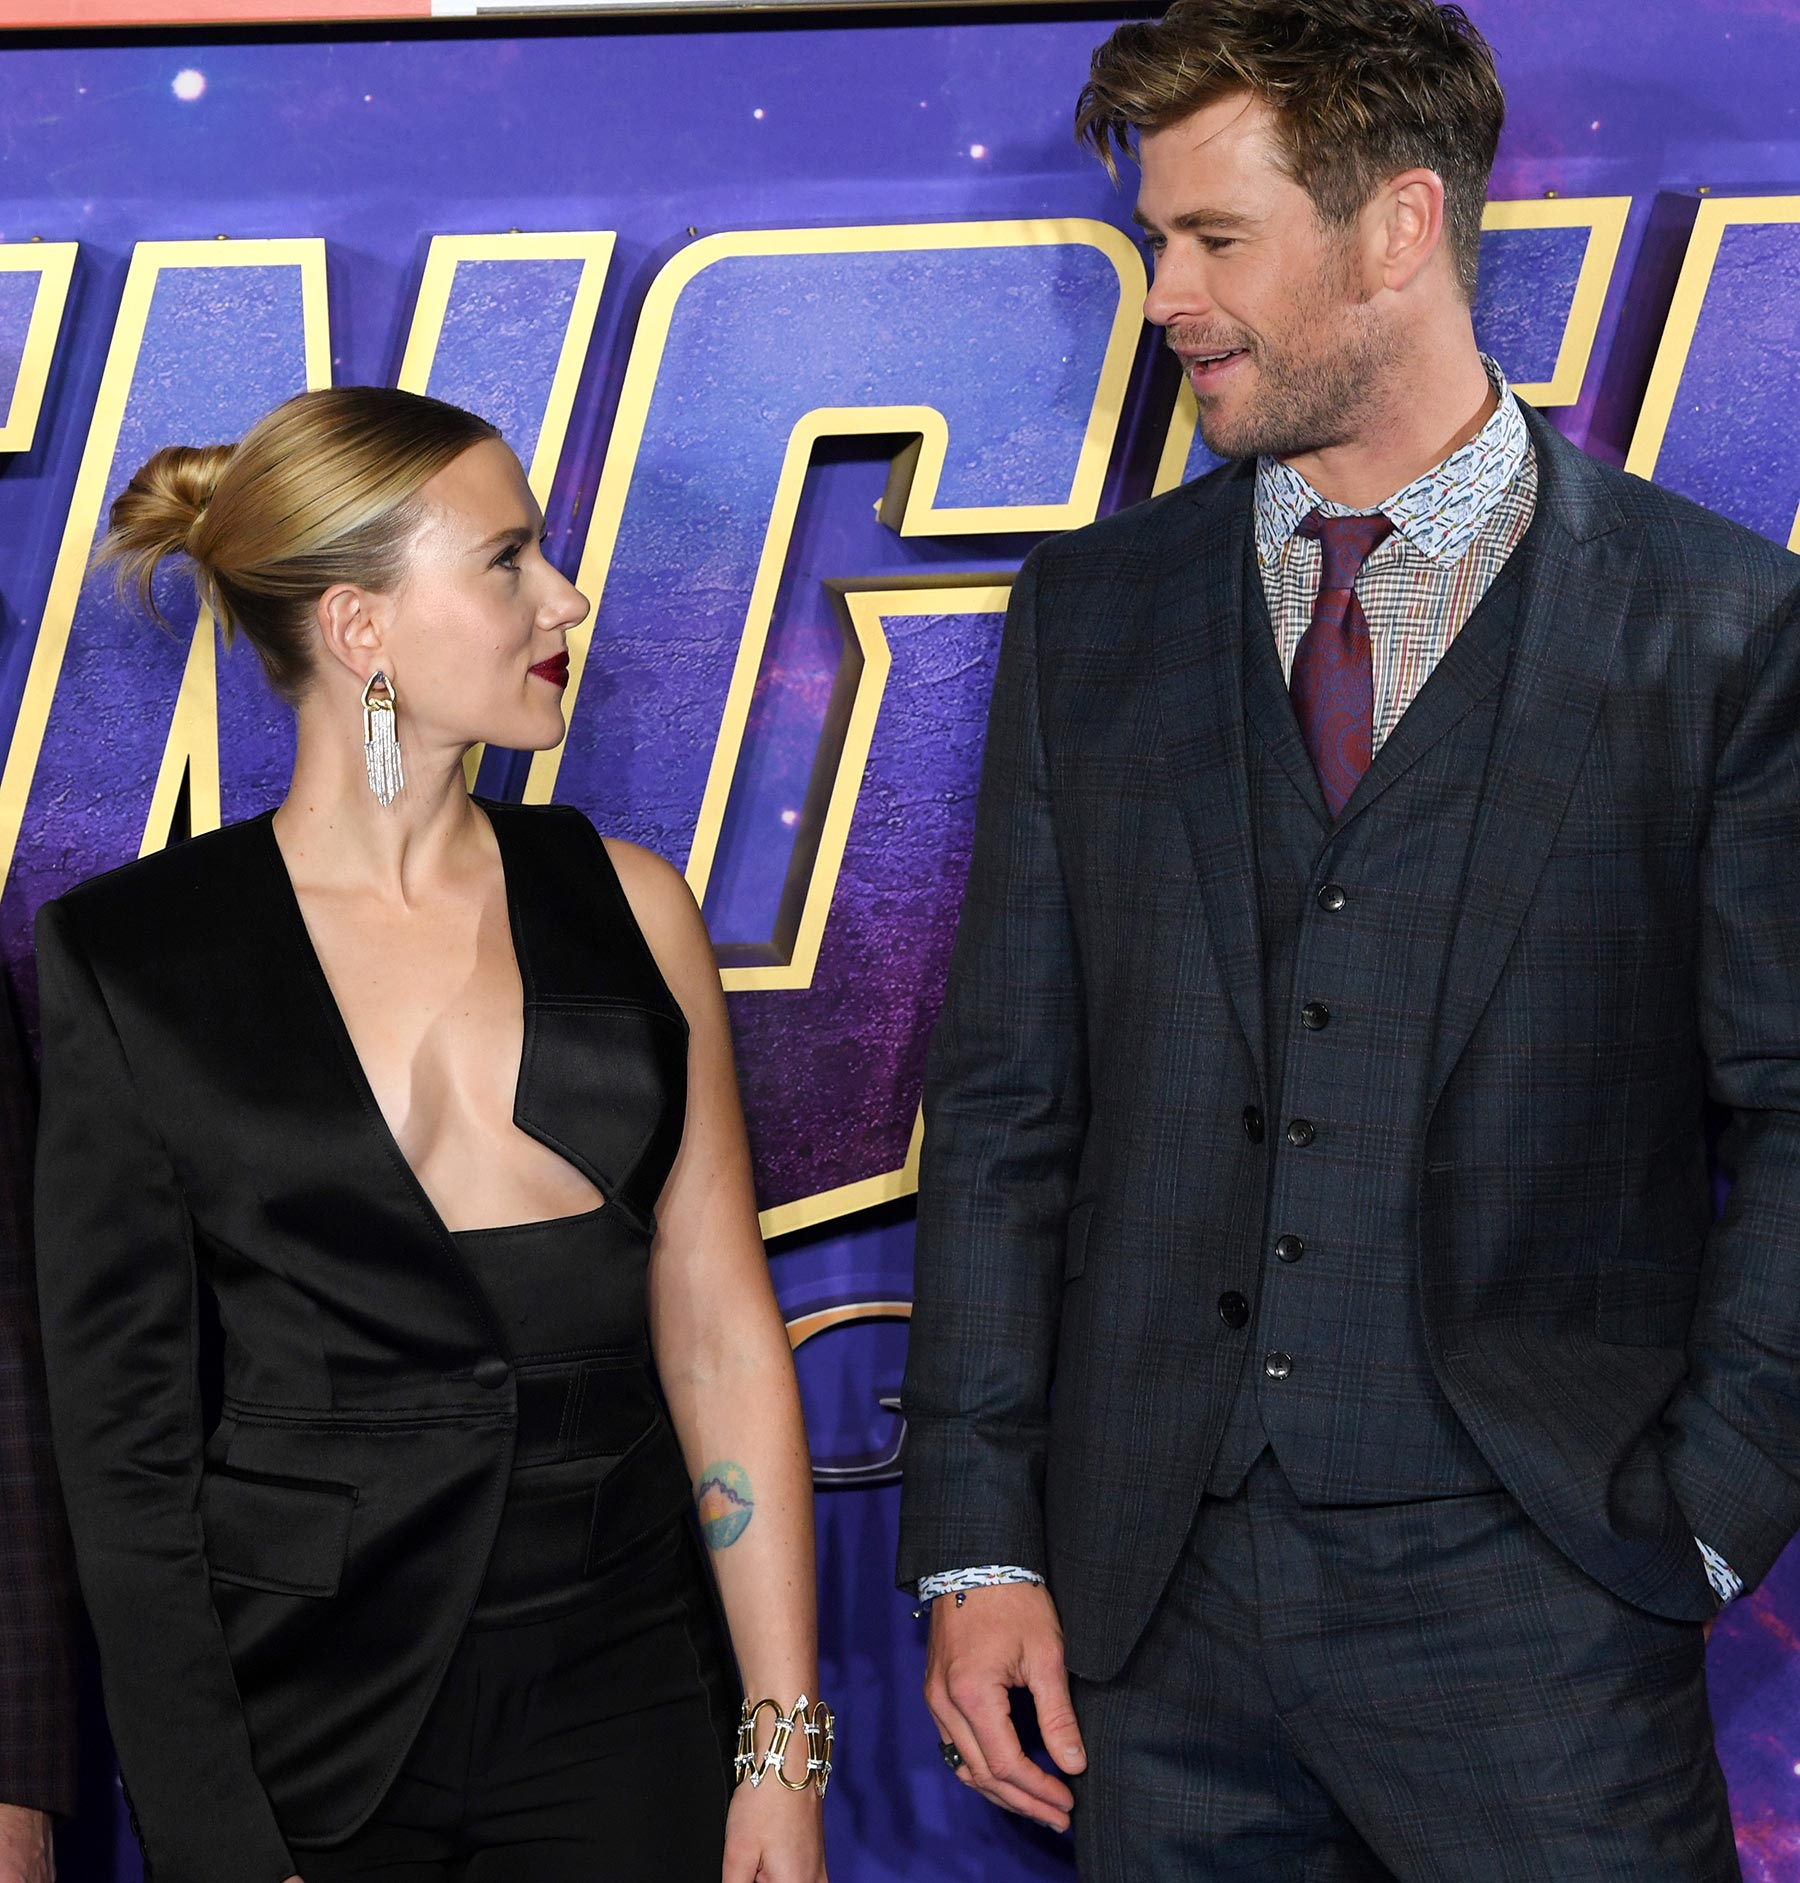 'Avengers: Endgame' film fan event, London, UK - 10 Apr 2019